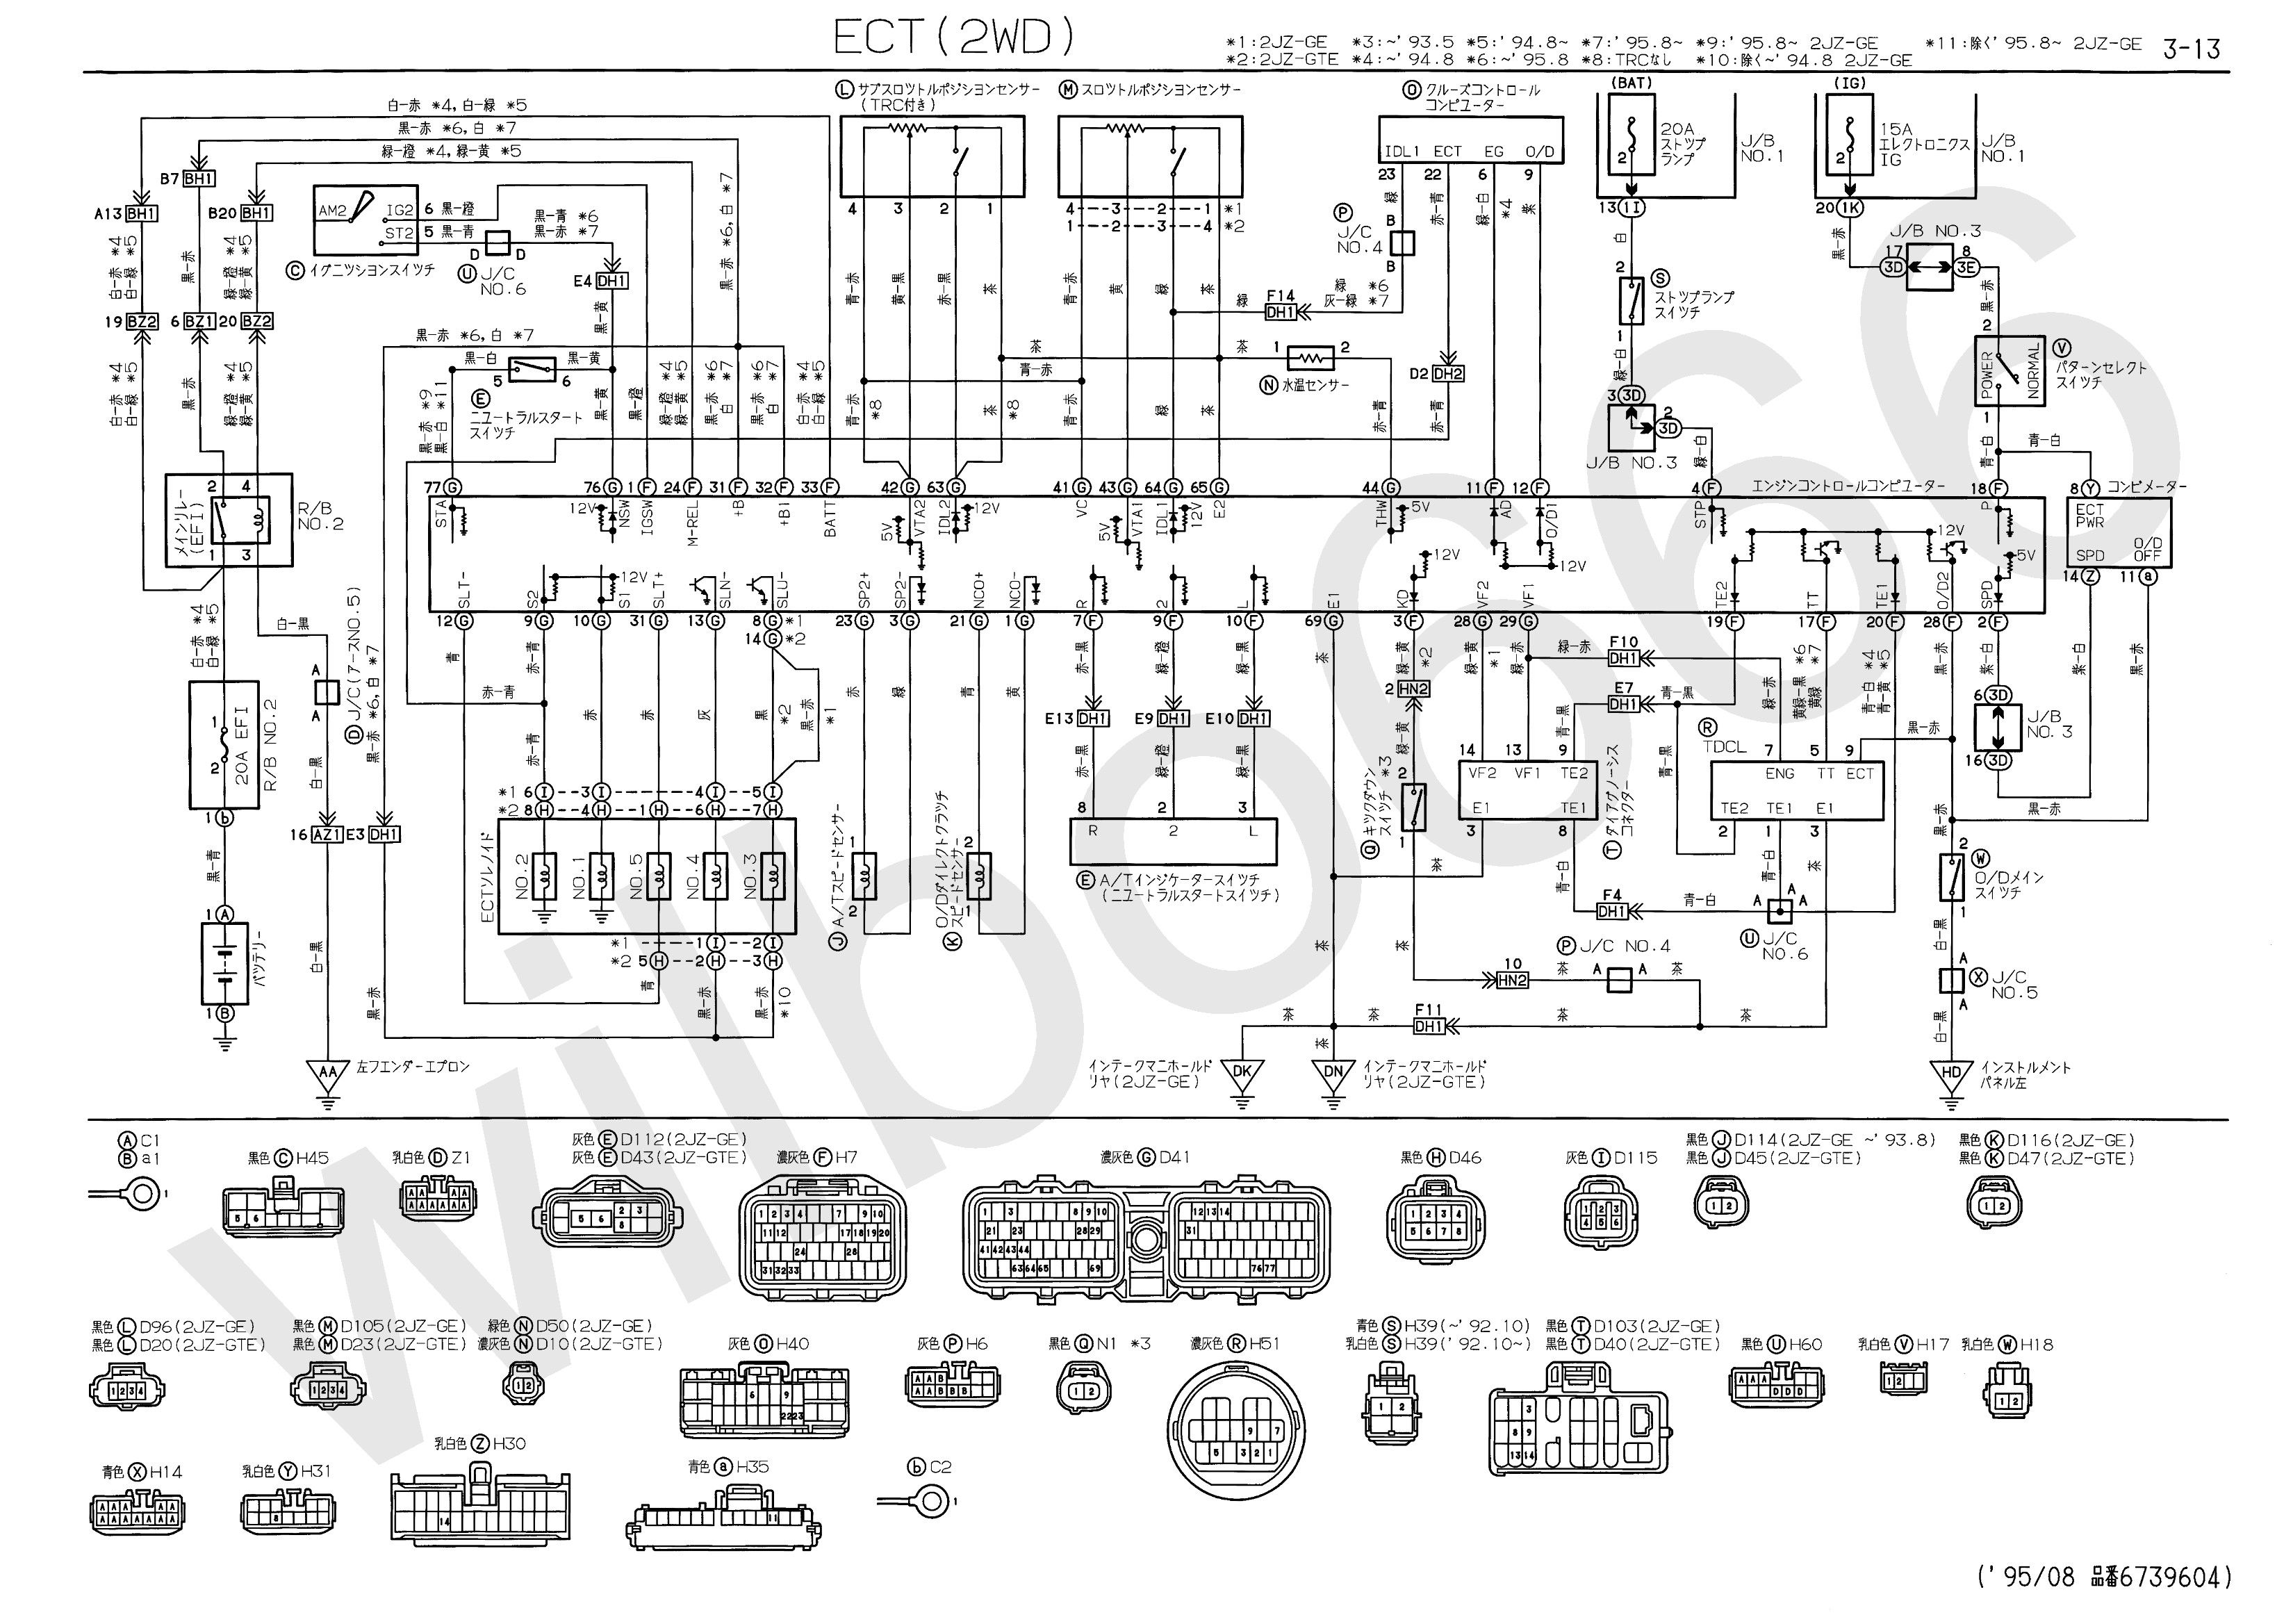 New Bmw E46 Wiring Diagram Pictures